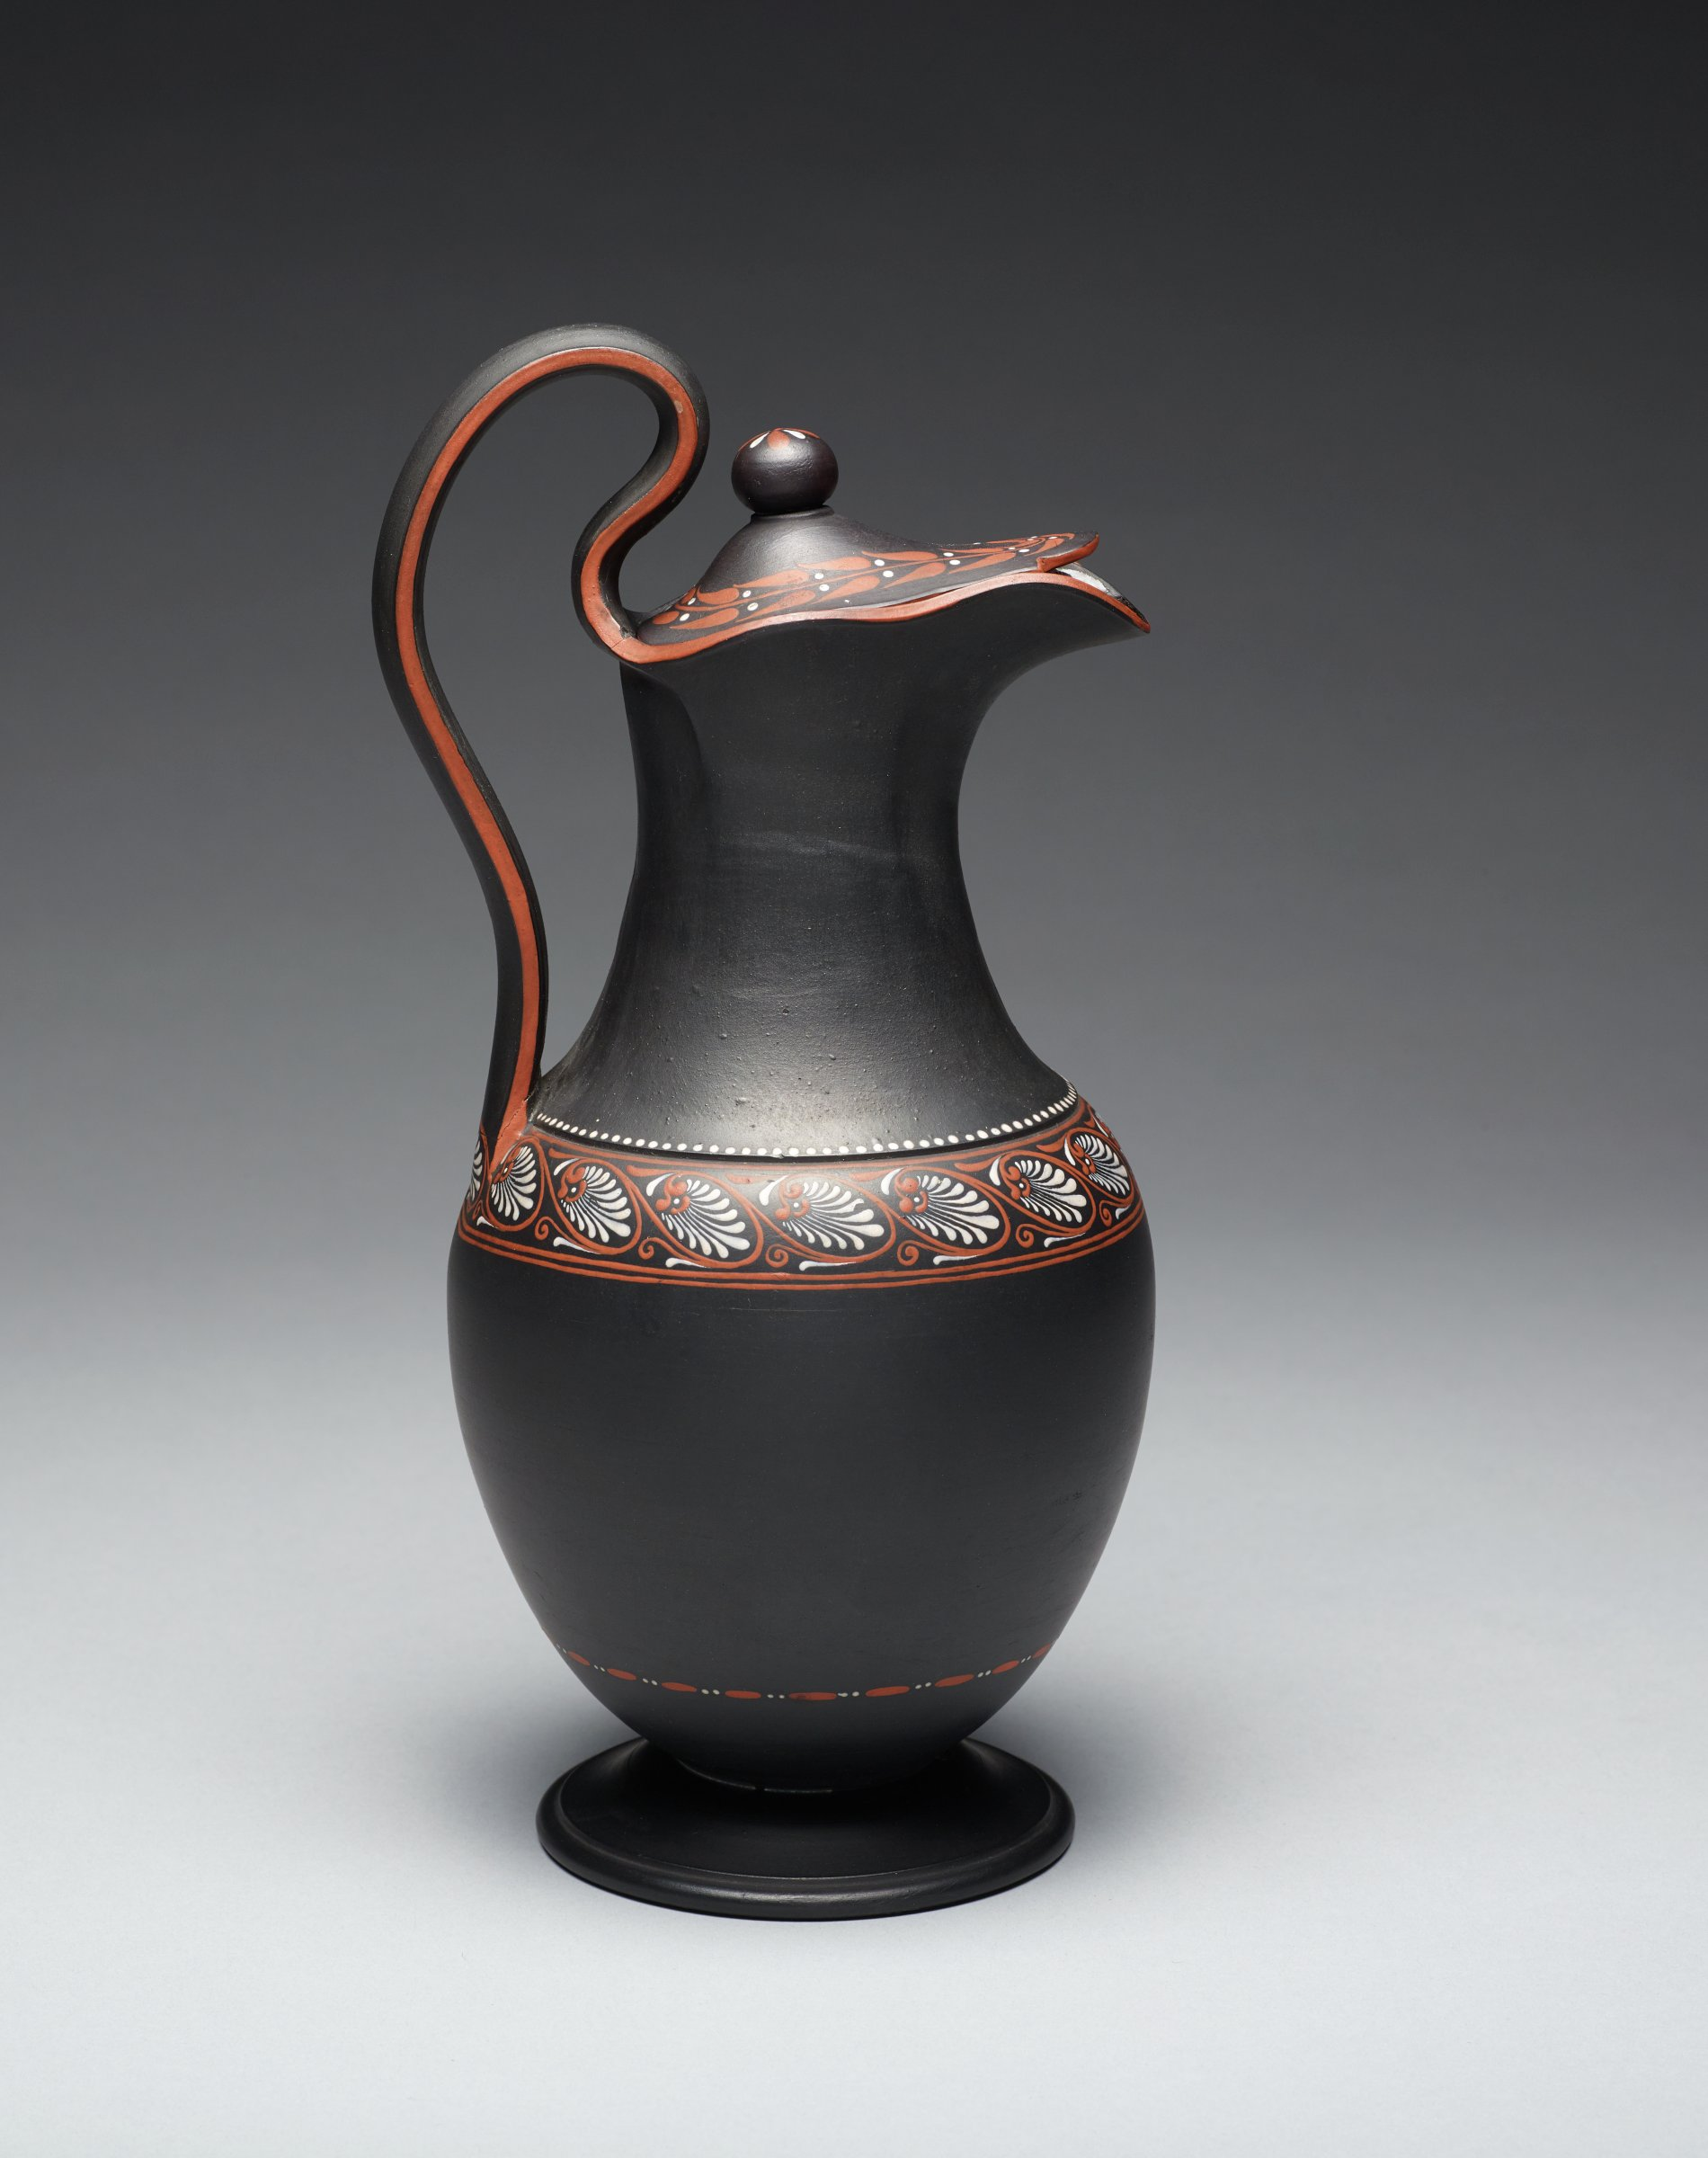 Large covered ewer (formally classified as a chocolate or coffee pot) of black basalt, with bulbous body on plain round foot with a band of dots and dashes at the lower body, at the shoulder a band of stylized anthemion motifs in red and white below a band of small white dots, with long neck and beak spout, curved handle edged in red, the conforming cover with red leafy motifs with white berries and ball finial, the interior glazed.